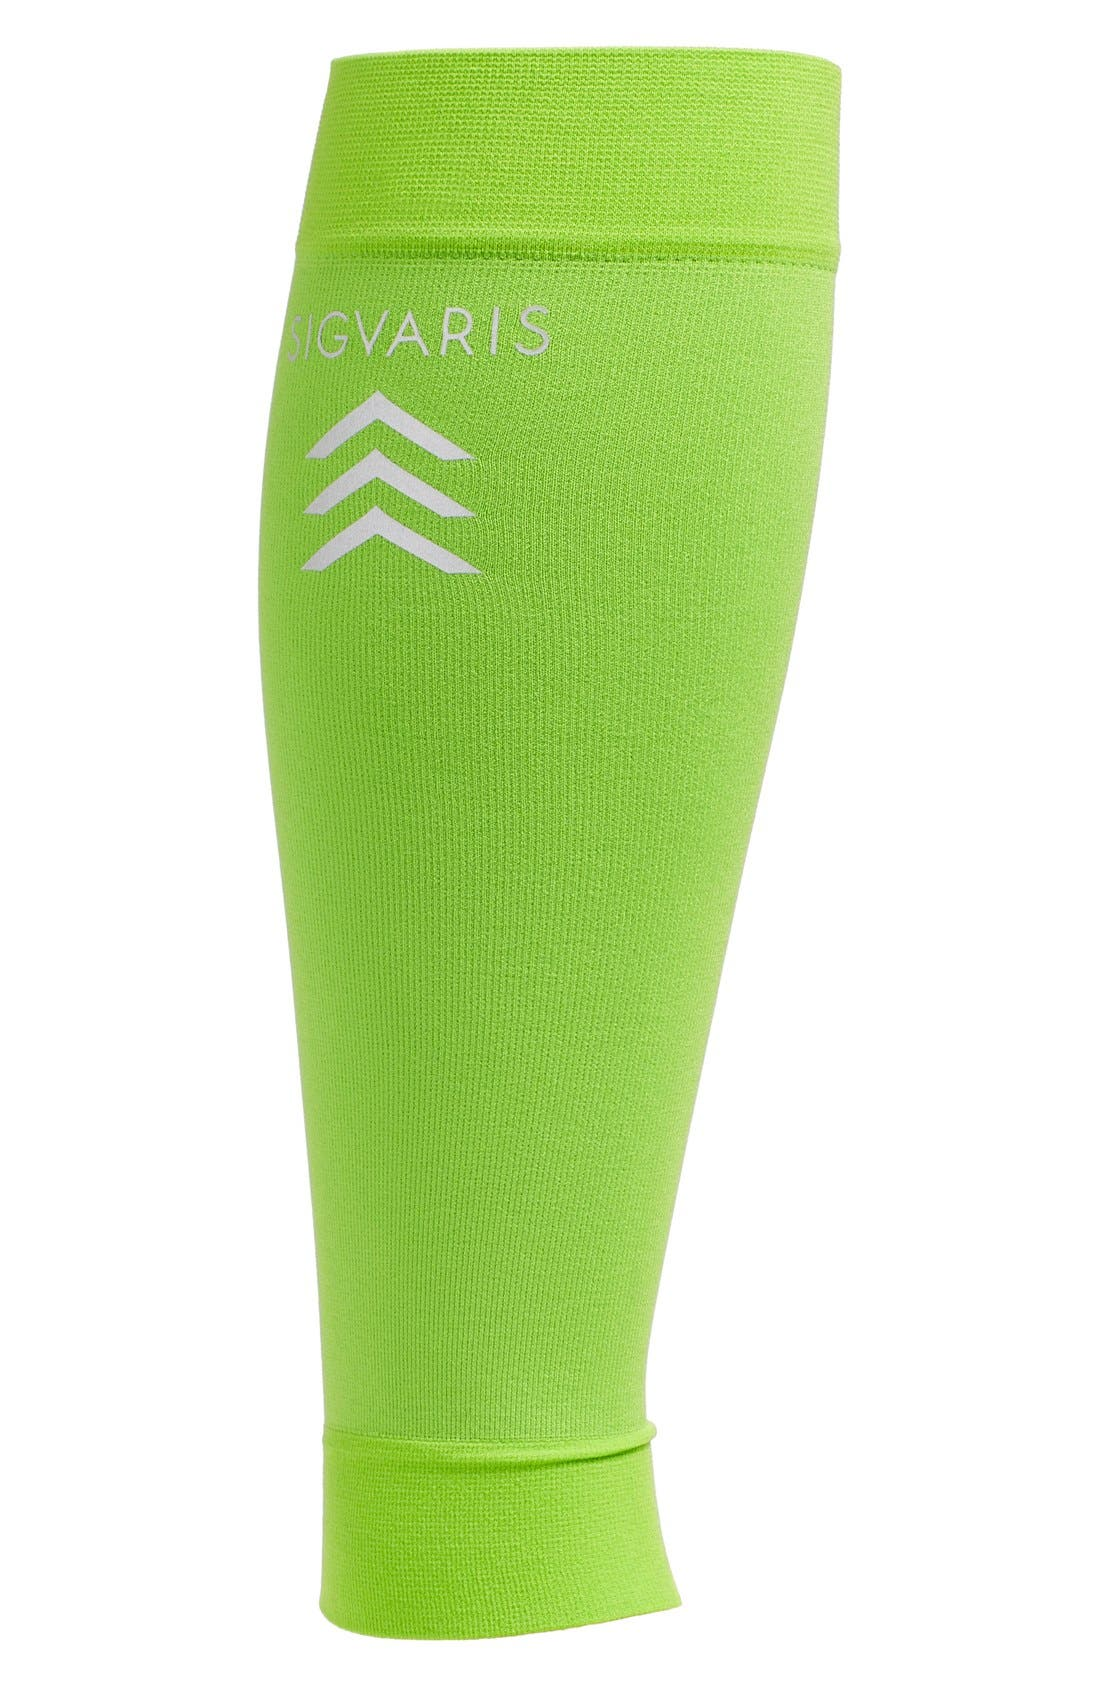 'Sports' Graduated Compression Performance Calf Sleeve,                         Main,                         color, Lime